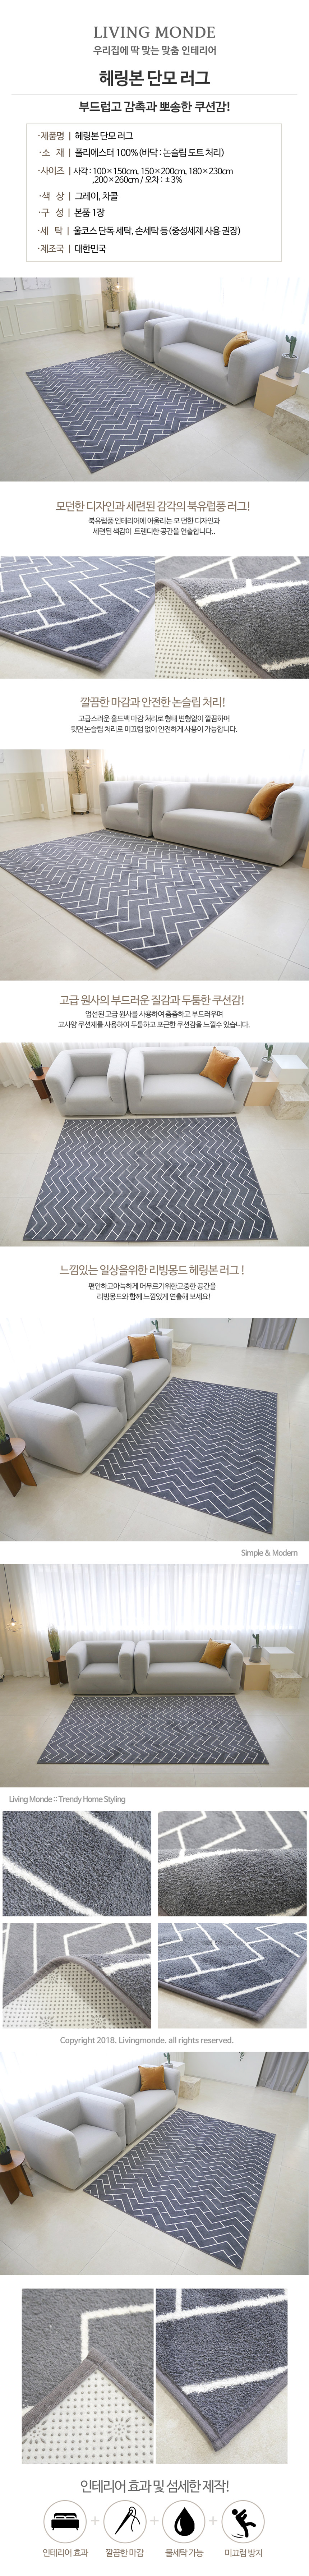 detail_herringbone_163836.jpg